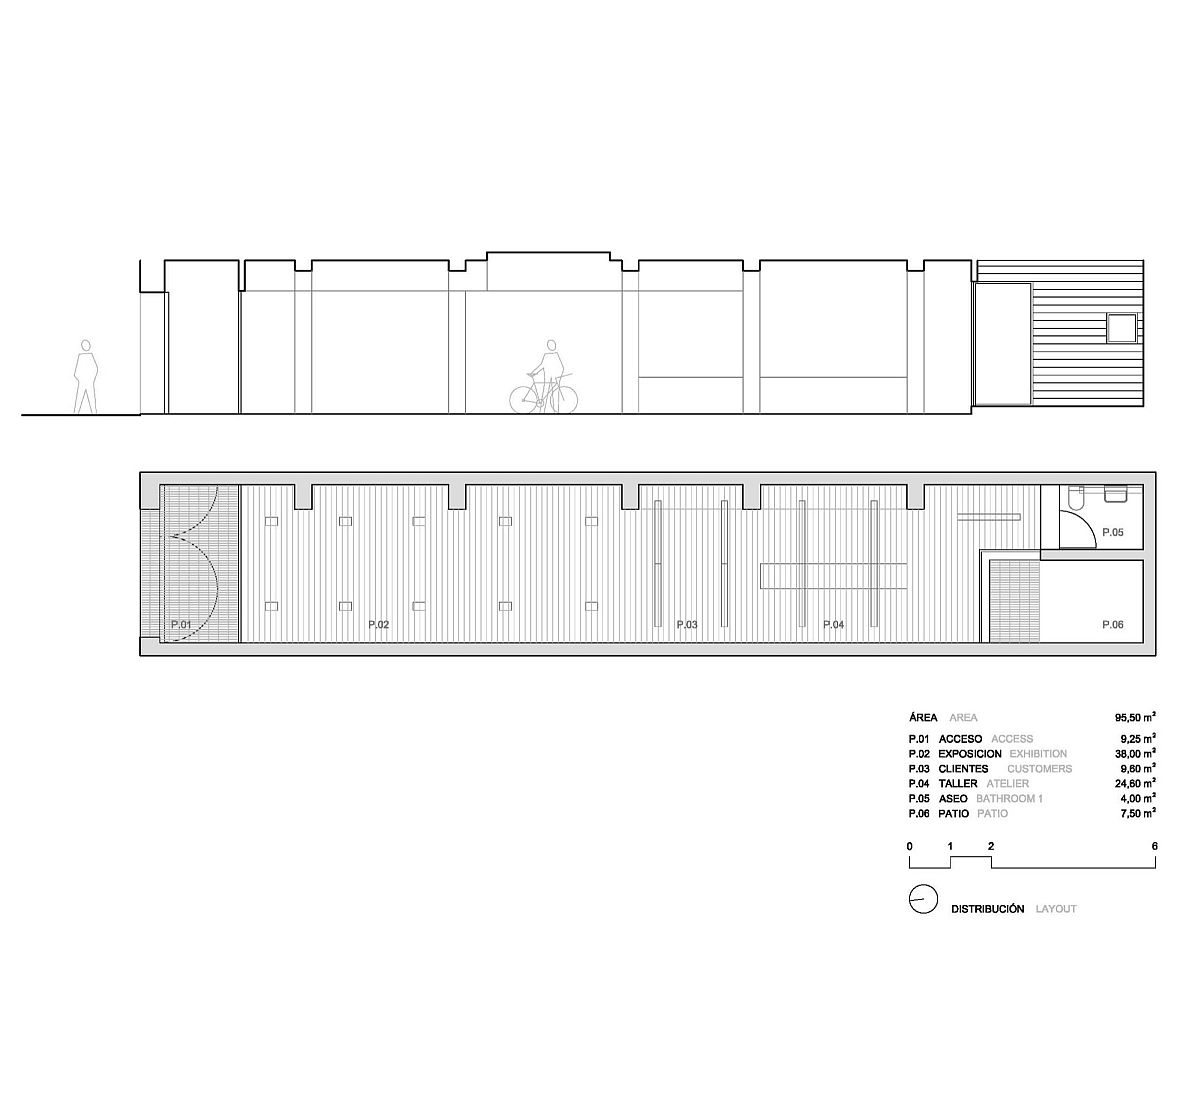 Floor plan of remodeled cycle shop